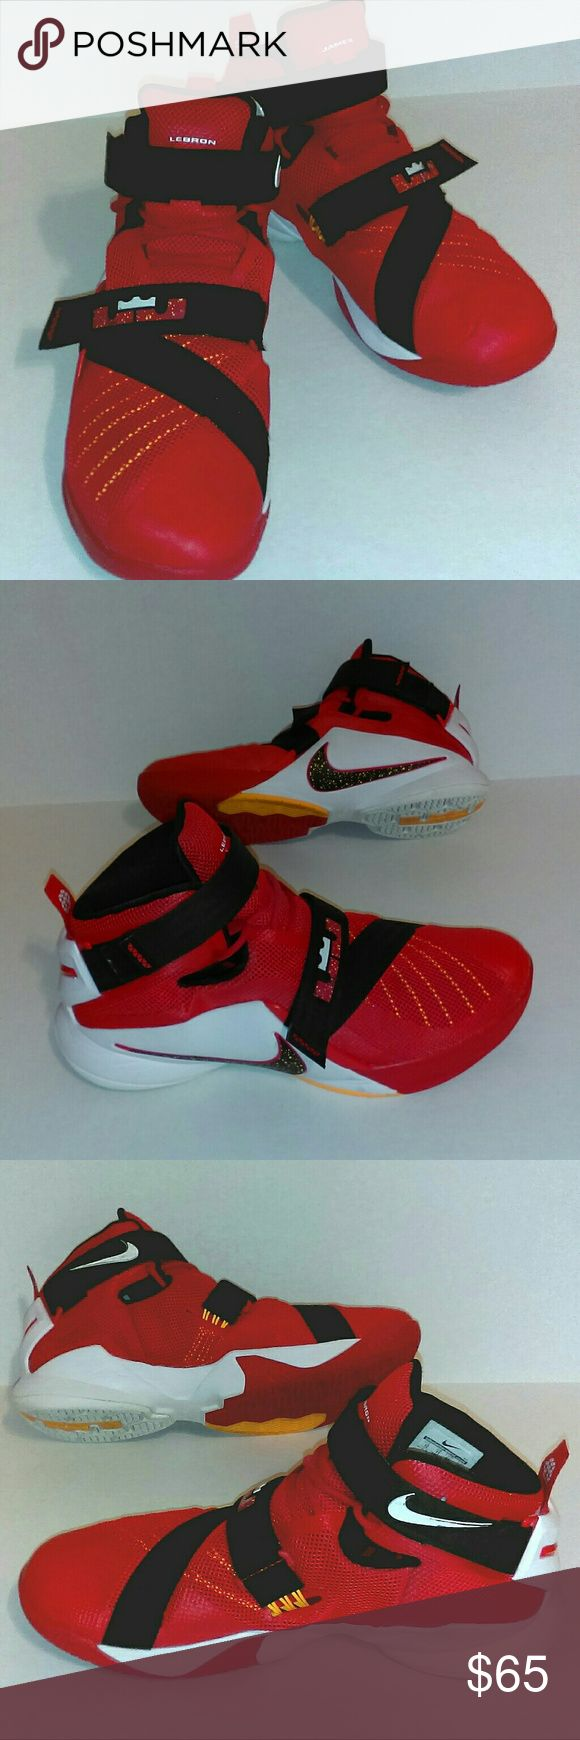 LeBron James by Nike Men's Size 12 Red/Black Well taken care of pair of LeBron James basketball high tops. They have been worn, and played in, but only indoors - they have never  seen concrete or asphalt!  Imagine my dismay when my daughter said she had grown out of a Men's 12 shoe!  They have a little wear on them, mostly  from conforming to her foot during play, but there are no scuffs  or marks, no rips or tears, except for a little wear on the Nike swoop on the inside ankle, highlighted…